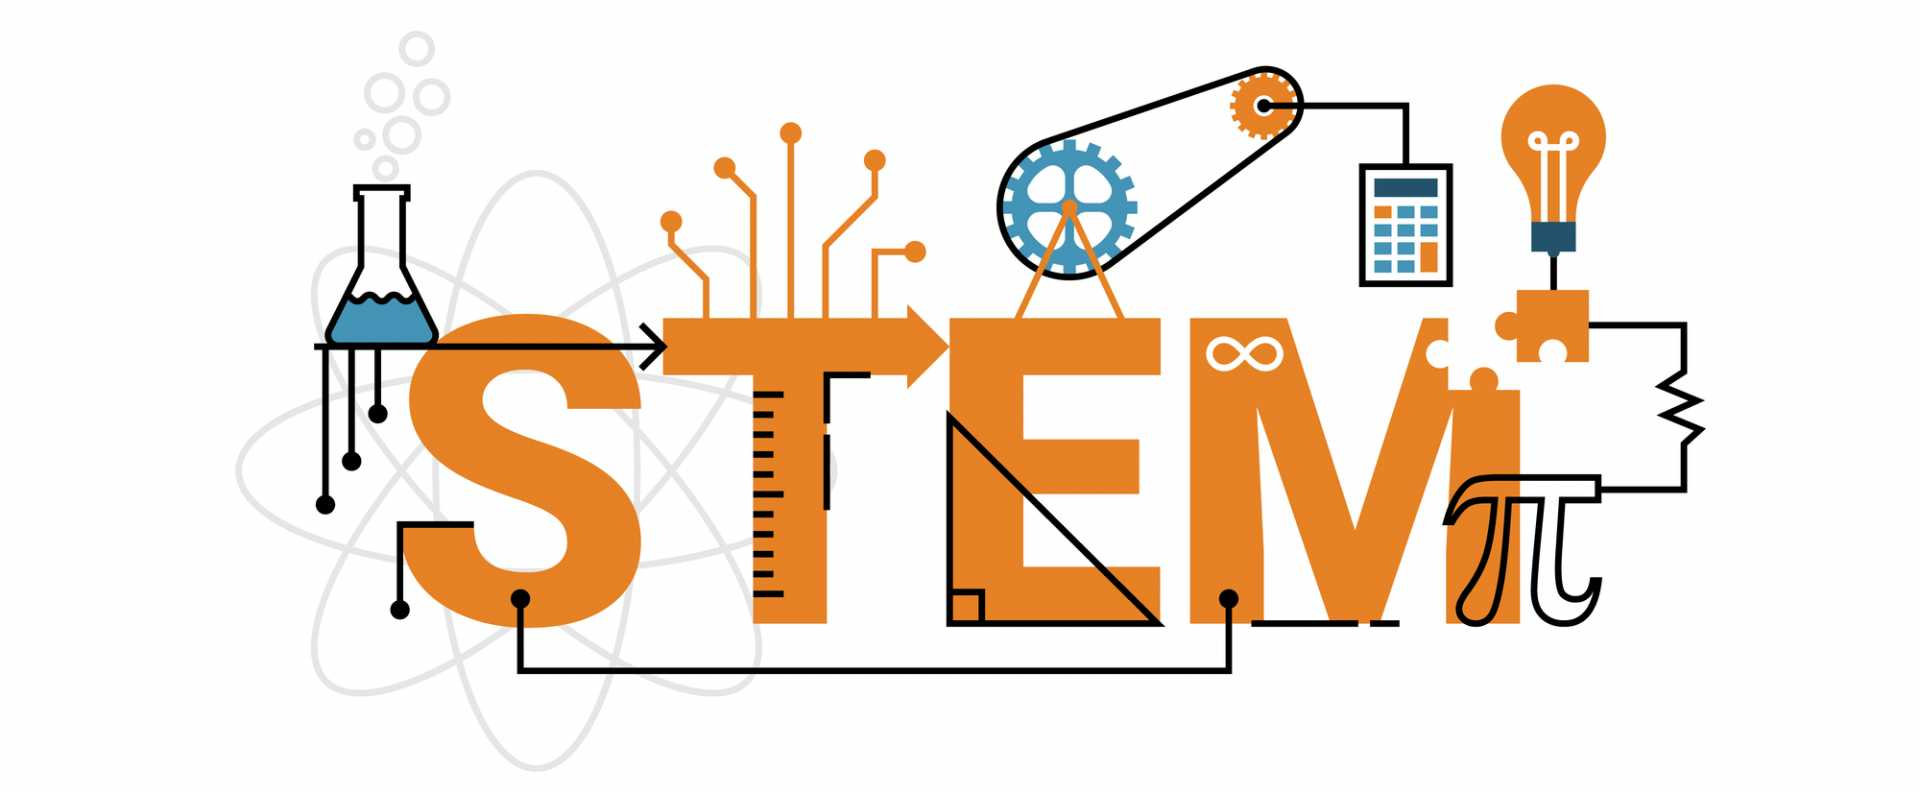 STEM education - image courtesy of Depositphotos.